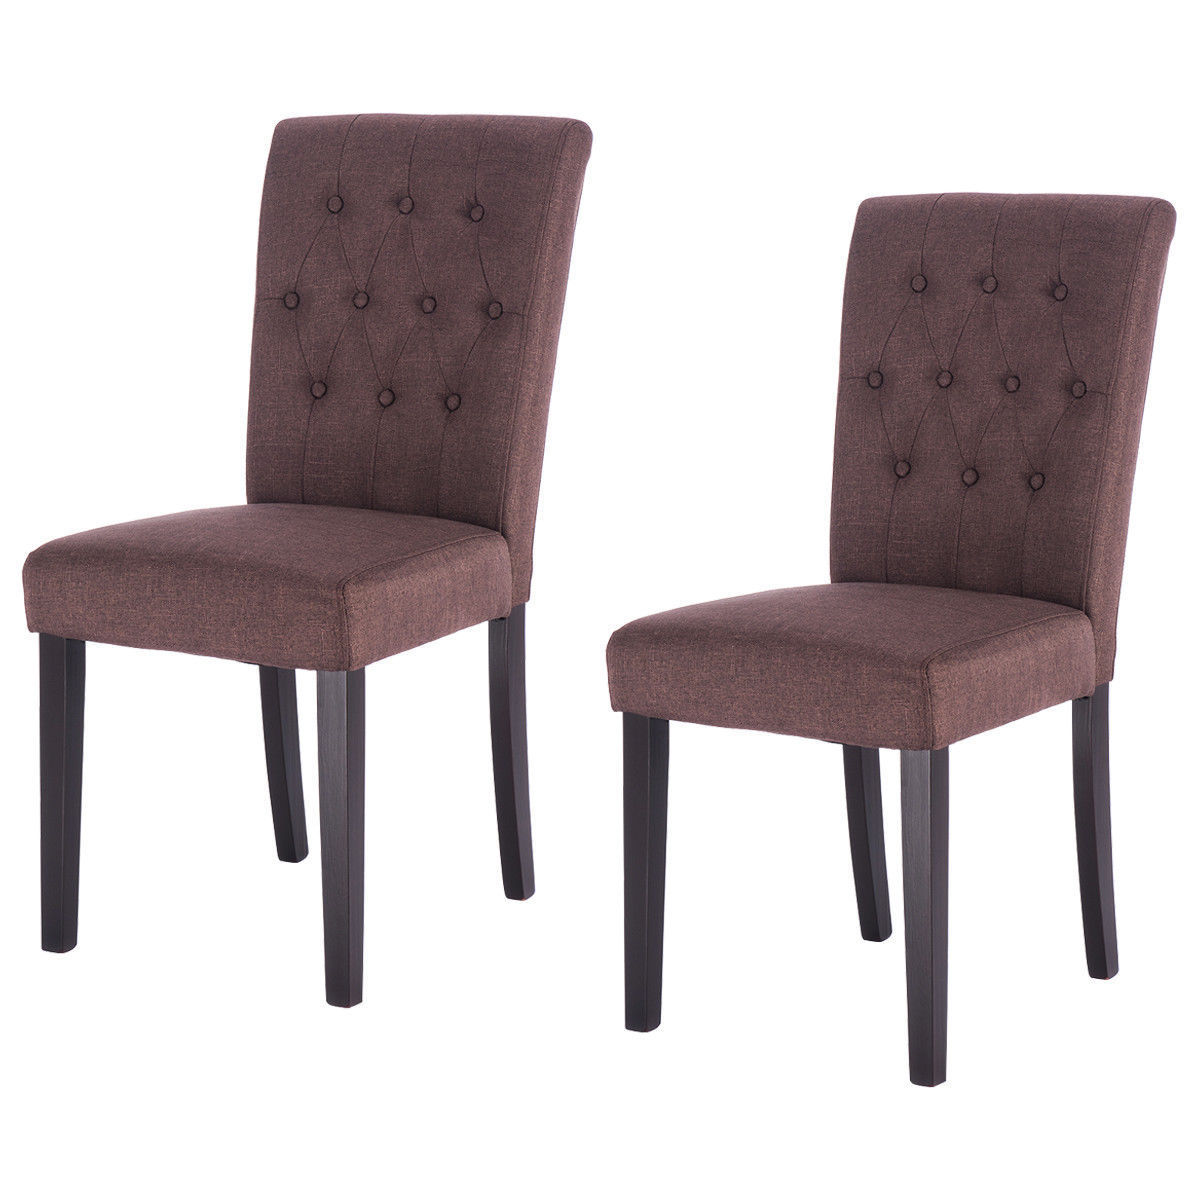 Set of 2 Fabric Dining Chair Armless Accent Tufted ...